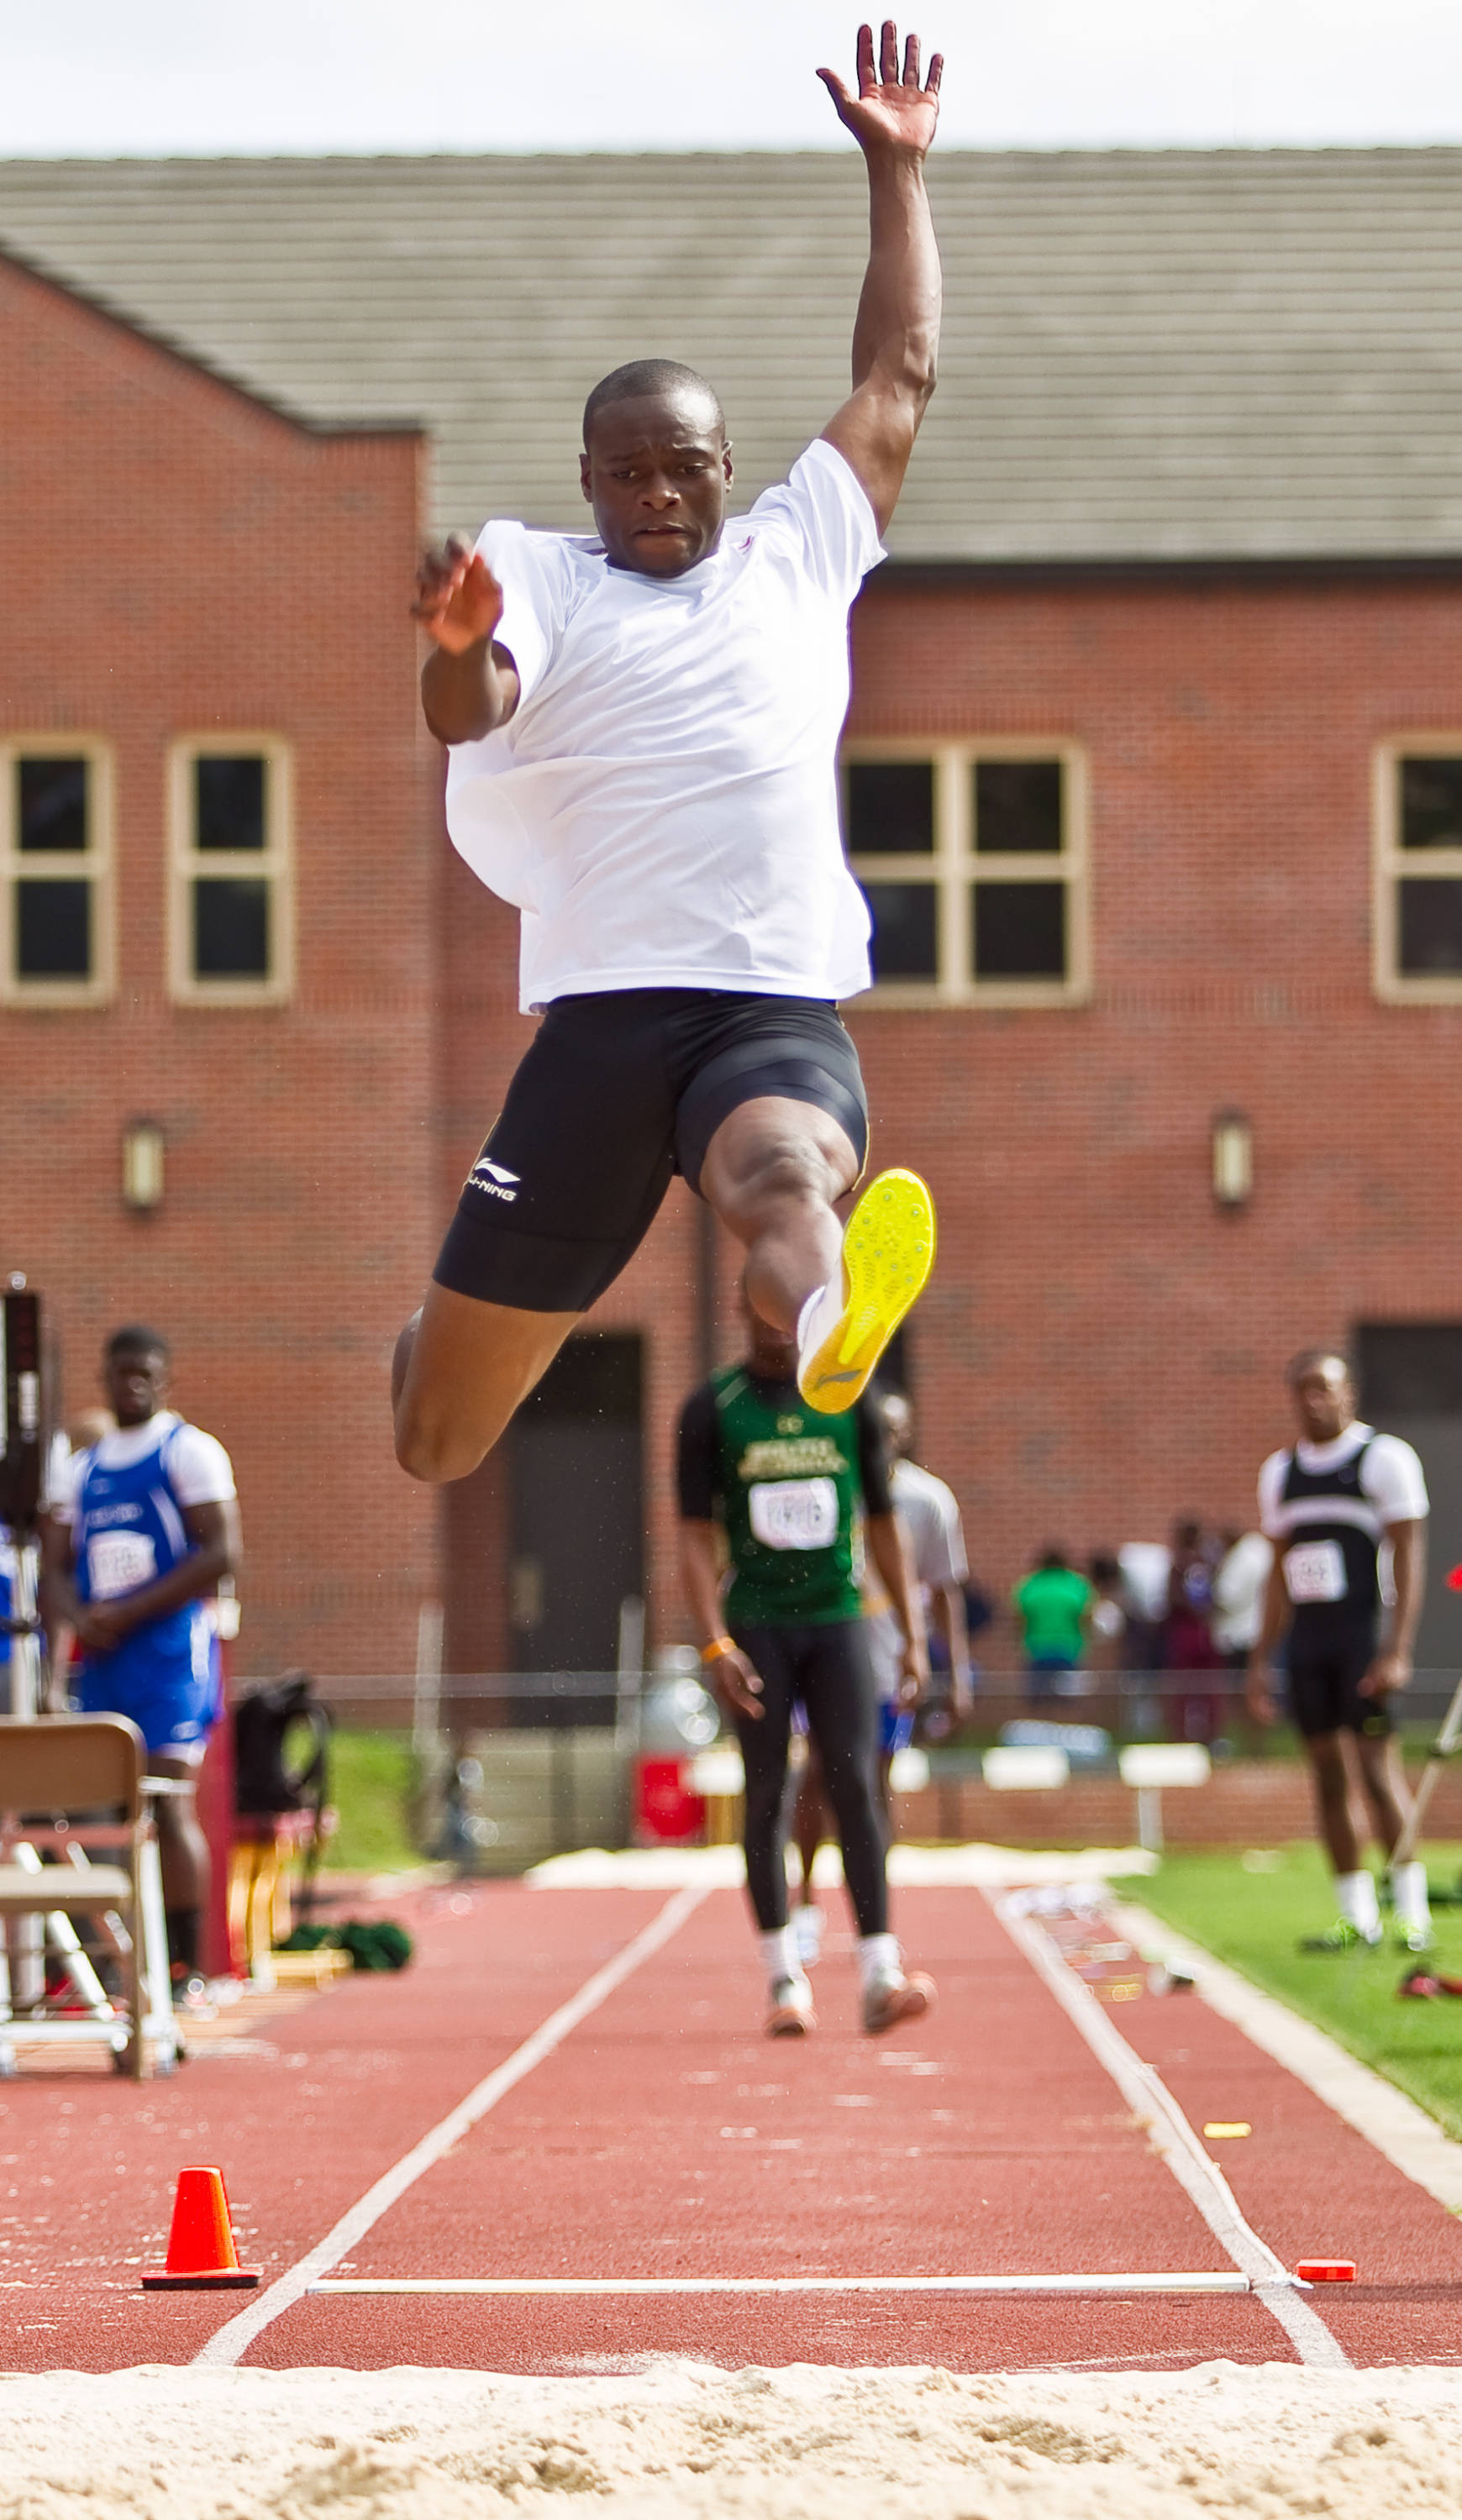 Former Seminole Ngoni Makusha needed only one jump to capture the long jump competition.